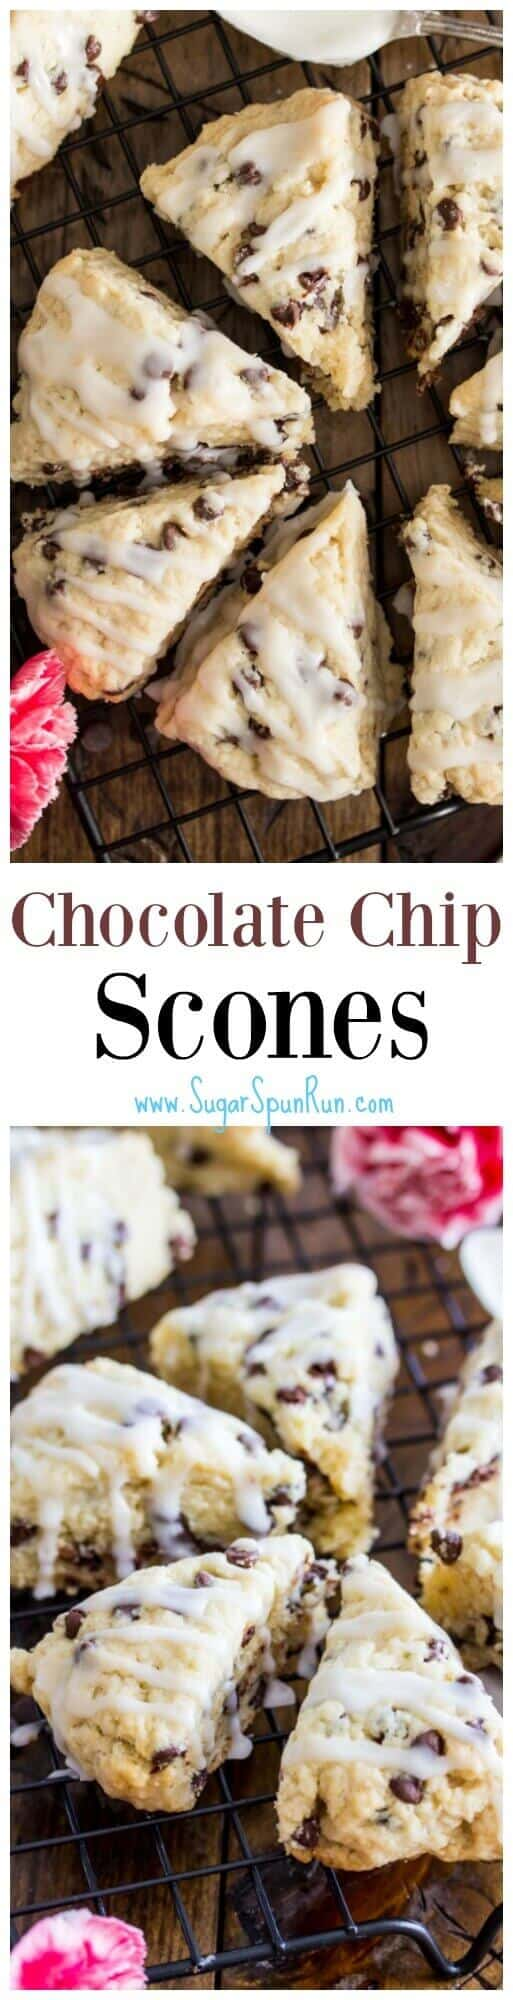 Mini Chocolate Chip Scones -- these are so good! || Sugar Spun Run